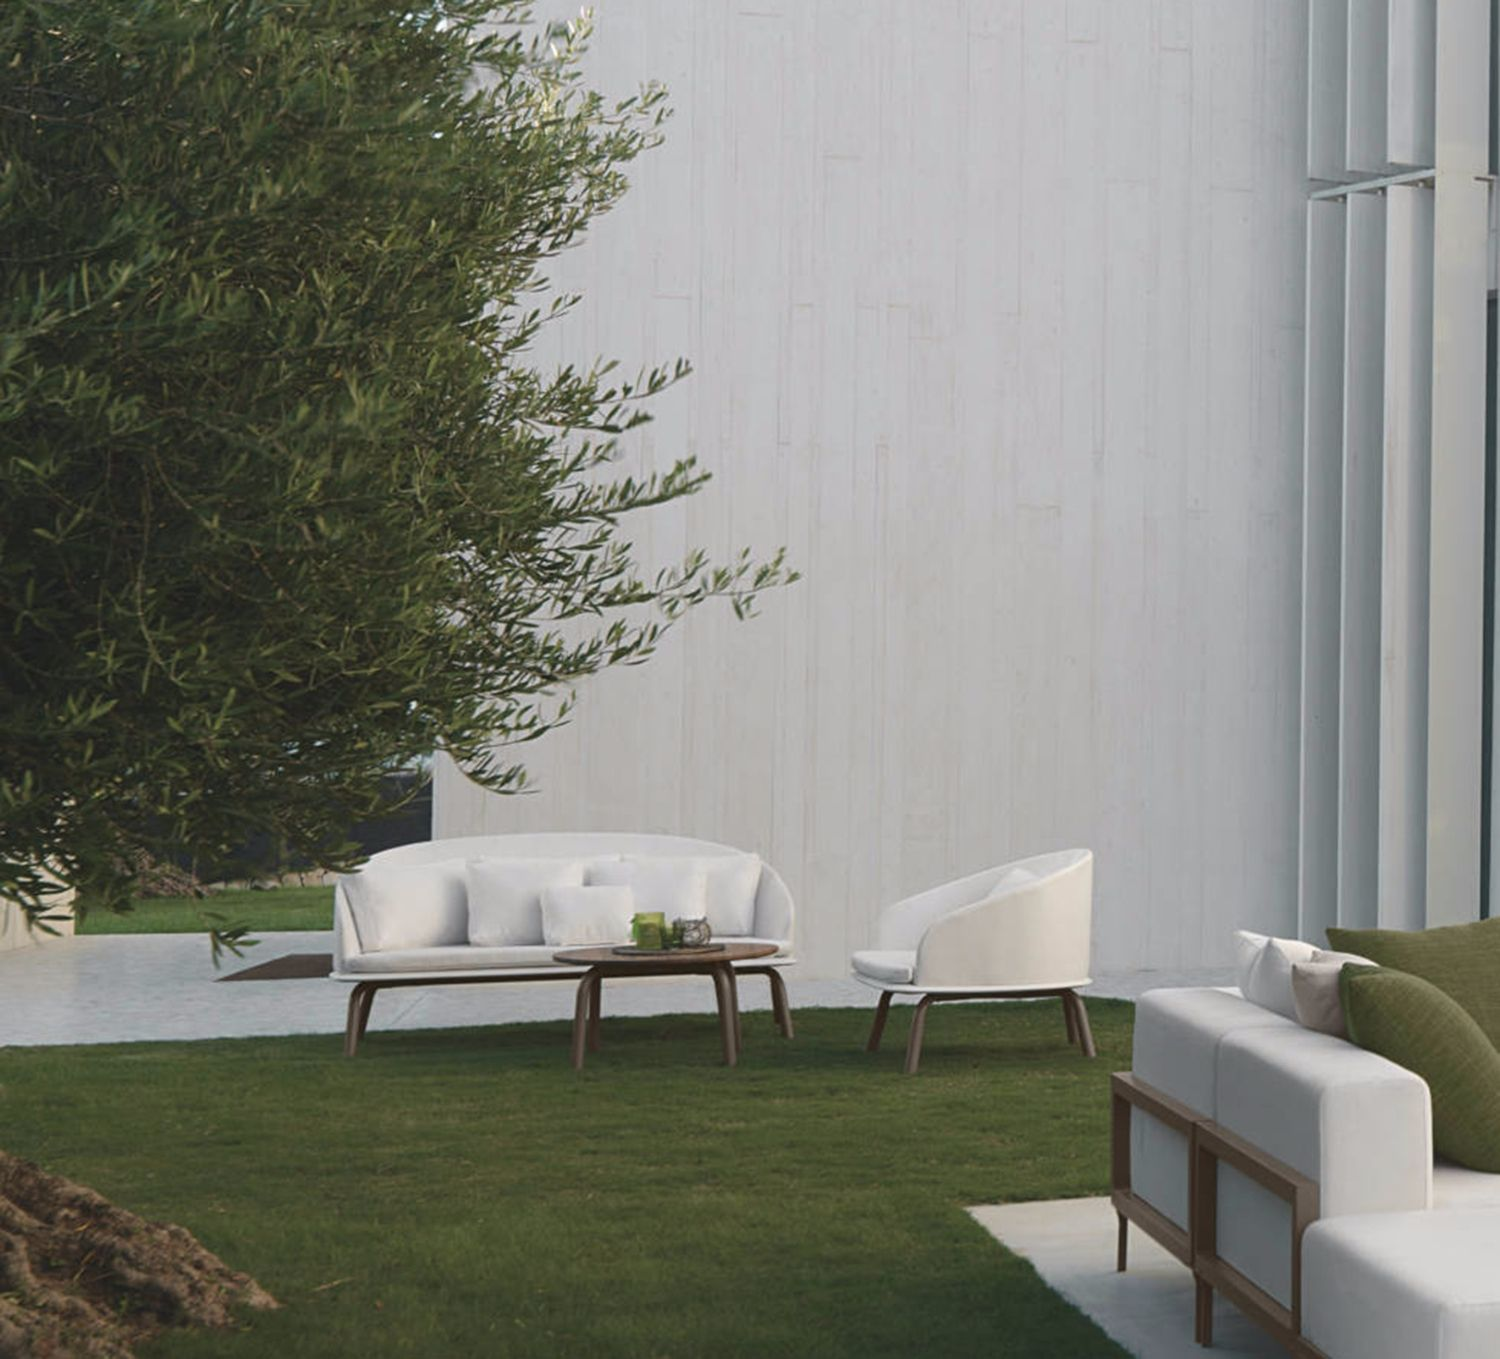 Cleo Alu Talenti Sofa 2 Design Marco Acerbis Among Talenti S Outdoor Collection Cleo Alu There S The Fixed Sofa Cleo Alu The Design Of This Furniture It